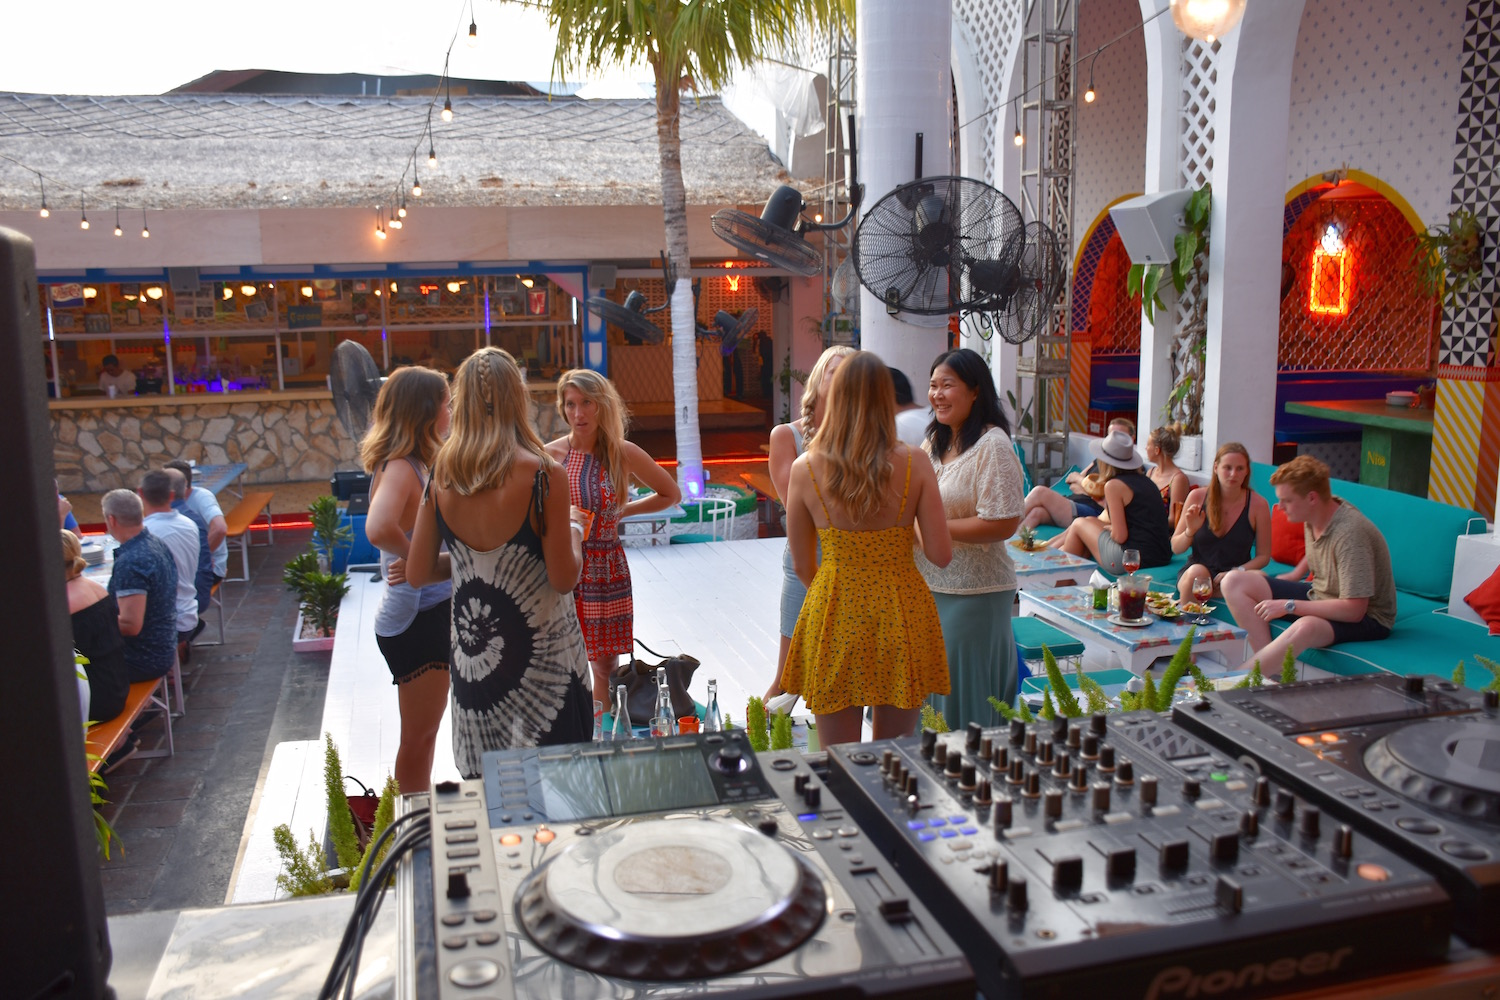 motel-mexicola-we-are-travel-girls-bali-event-16